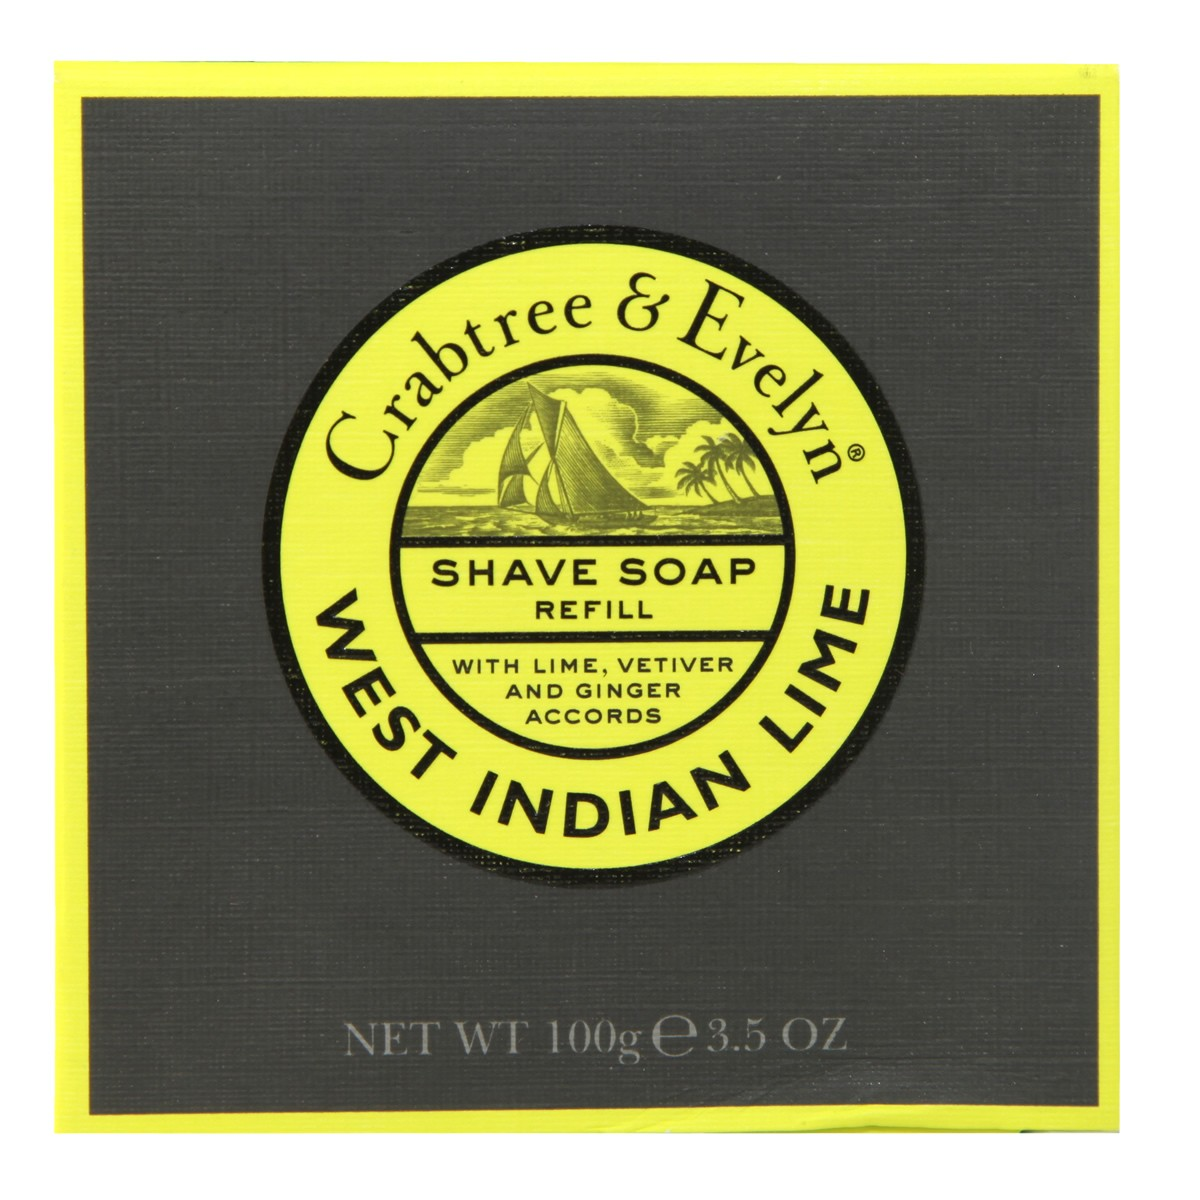 Crabtree & Evelyn West Indian Lime Shave Soap Refill